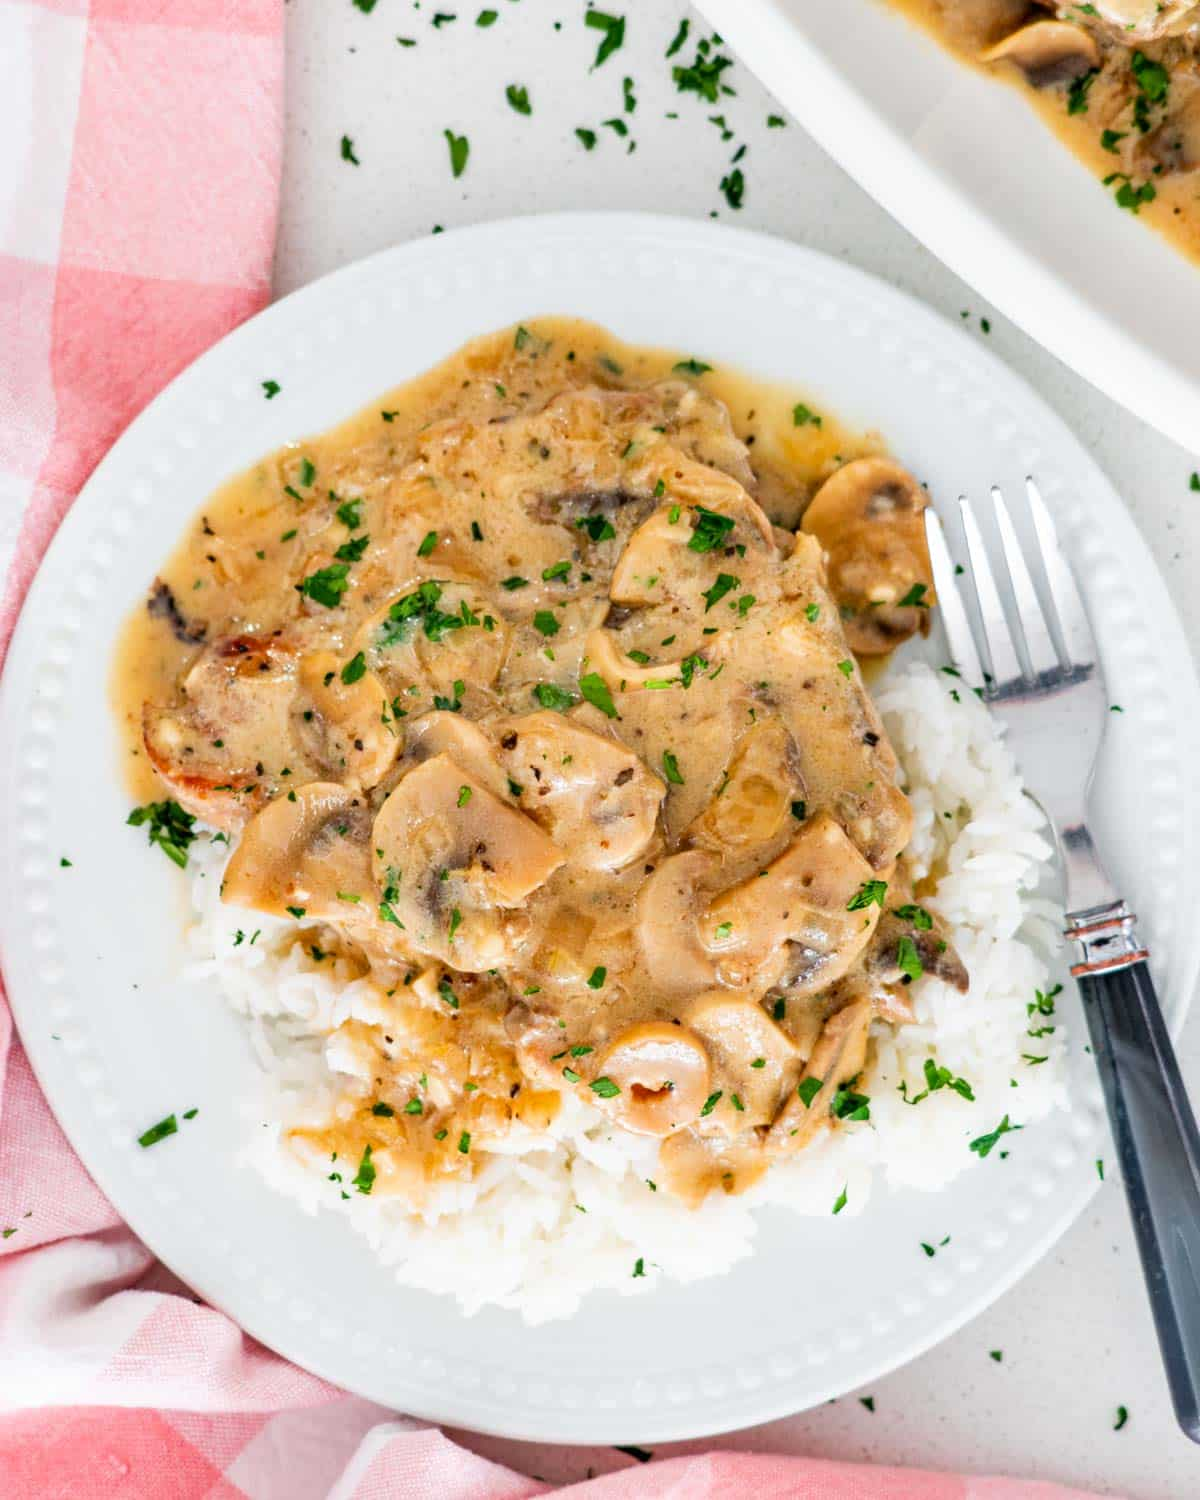 pork chops with mushroom gravy over a bed of rice on a white plate.